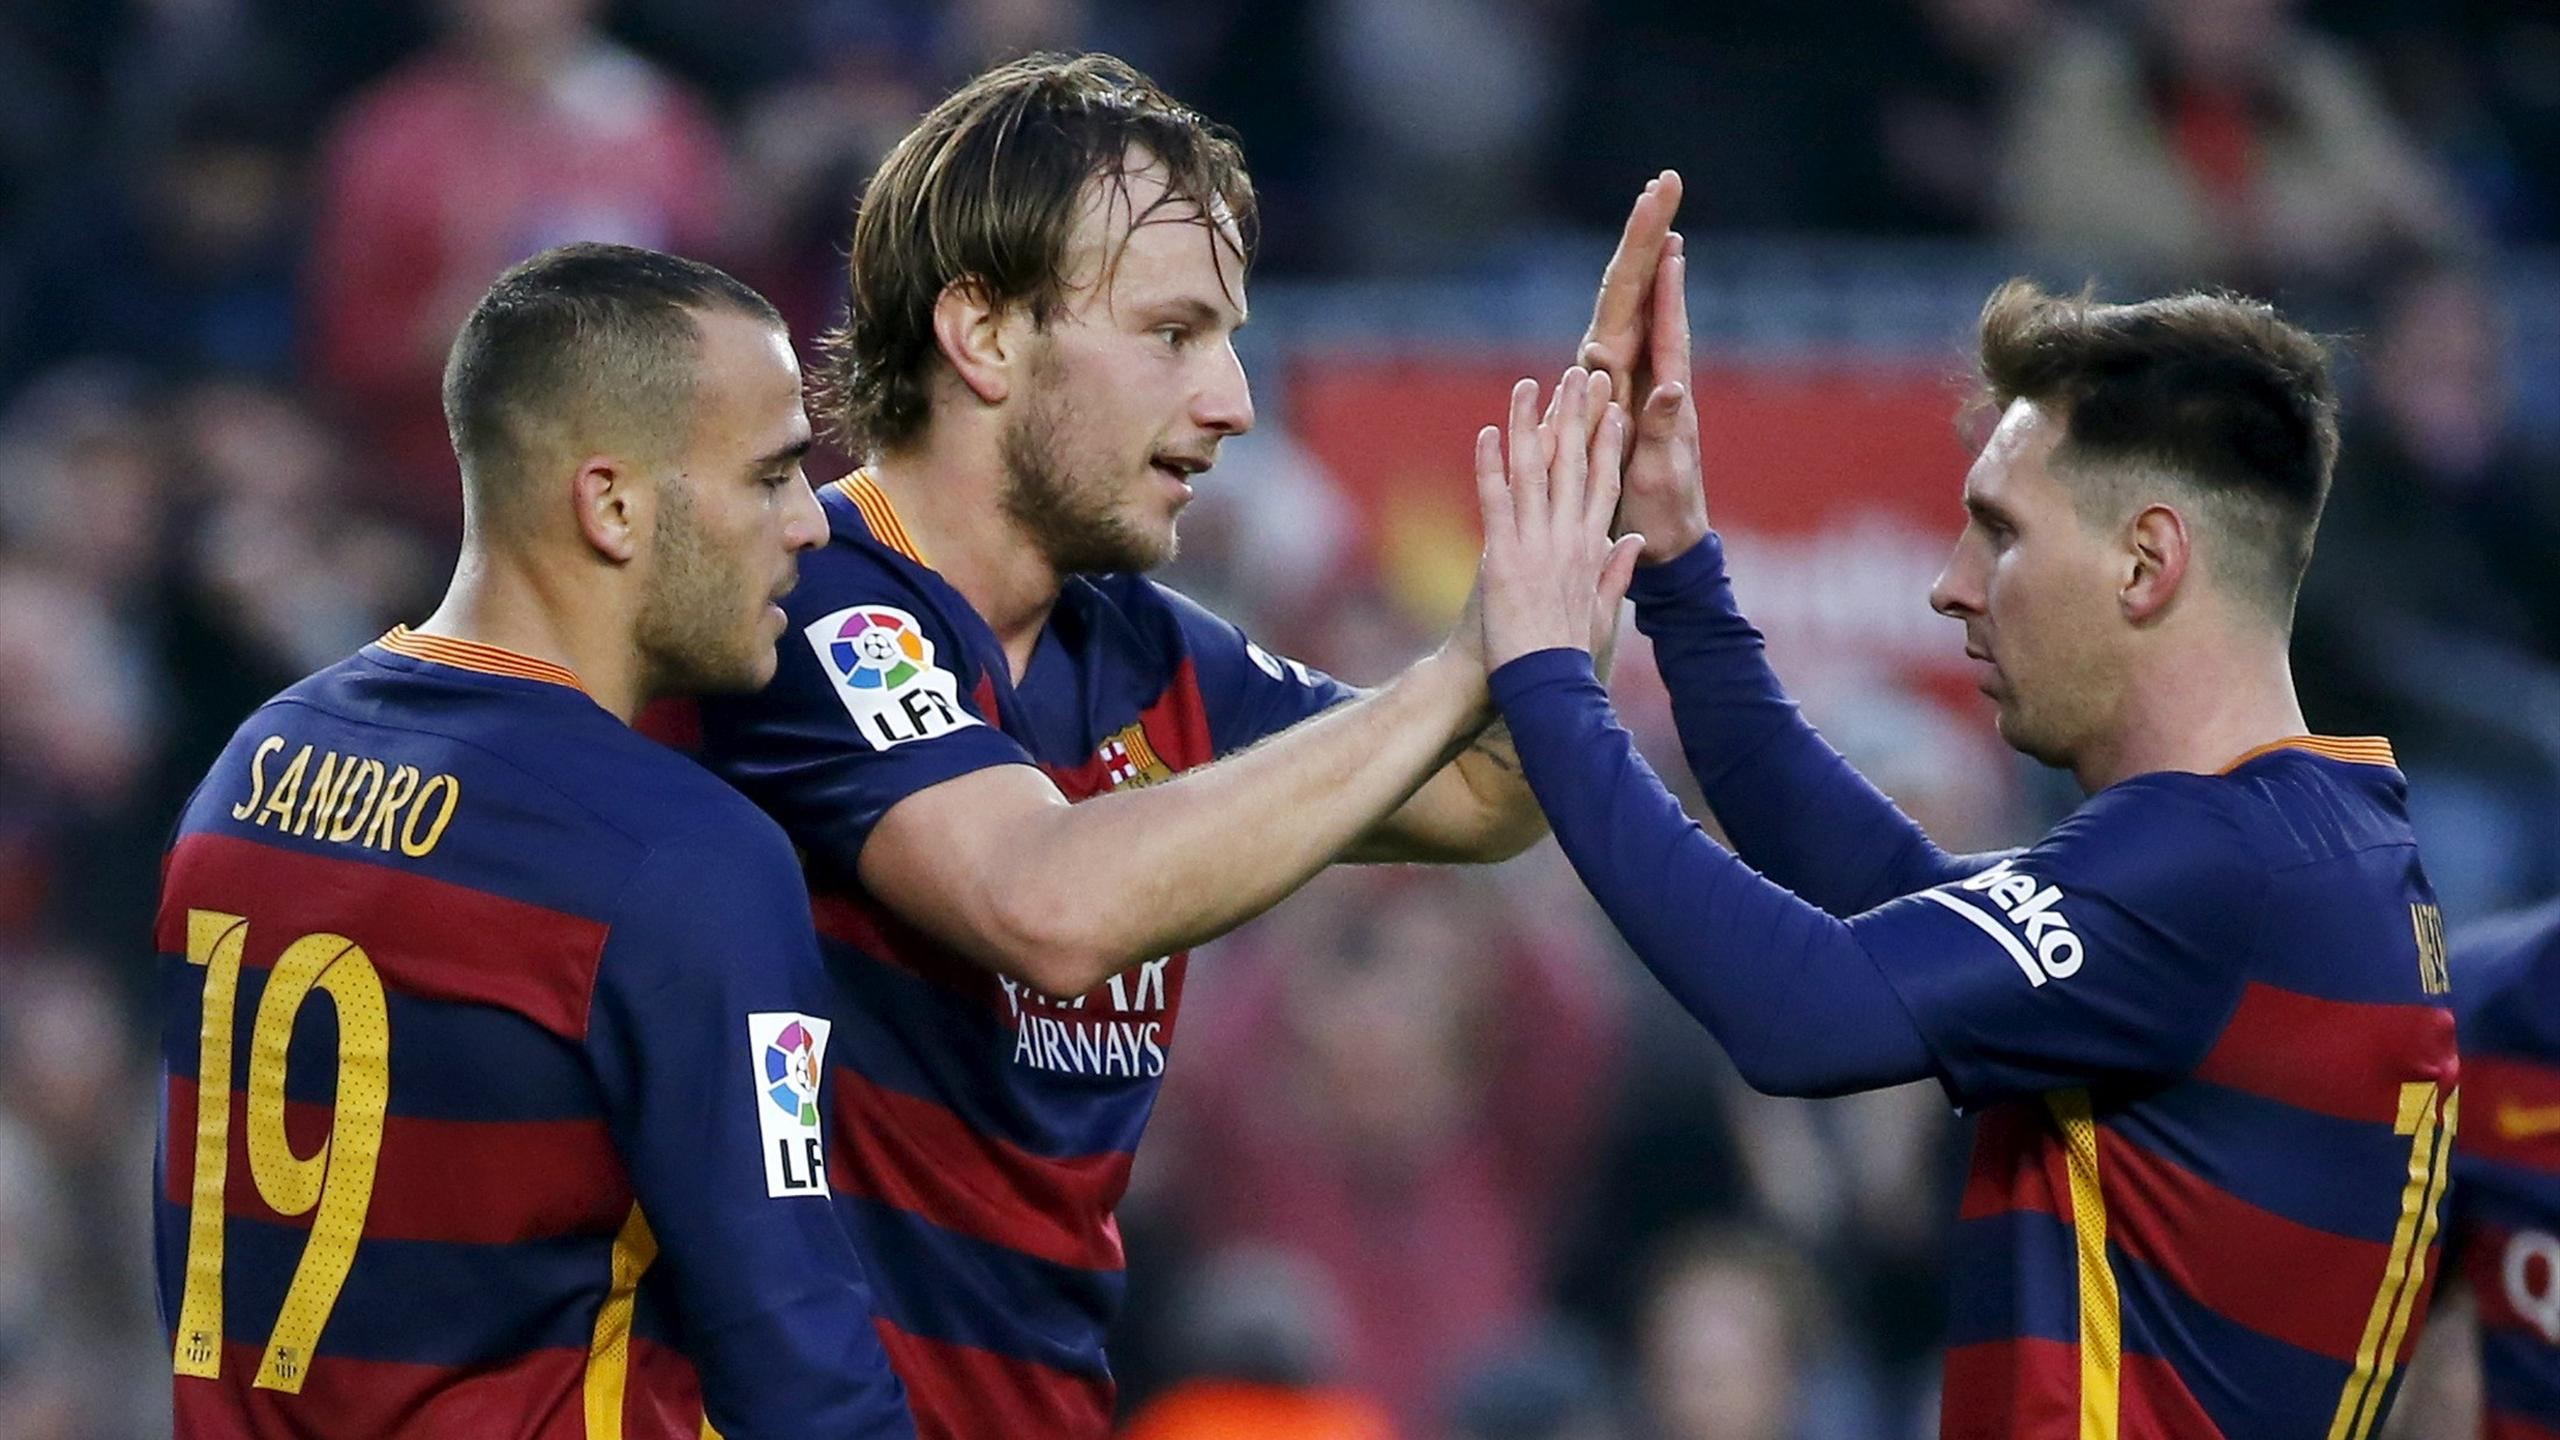 Barcelona's Ivan Rakitic celebrates scoring with his team mates Lionel Messi (R) and Sandro Ramirez (L)